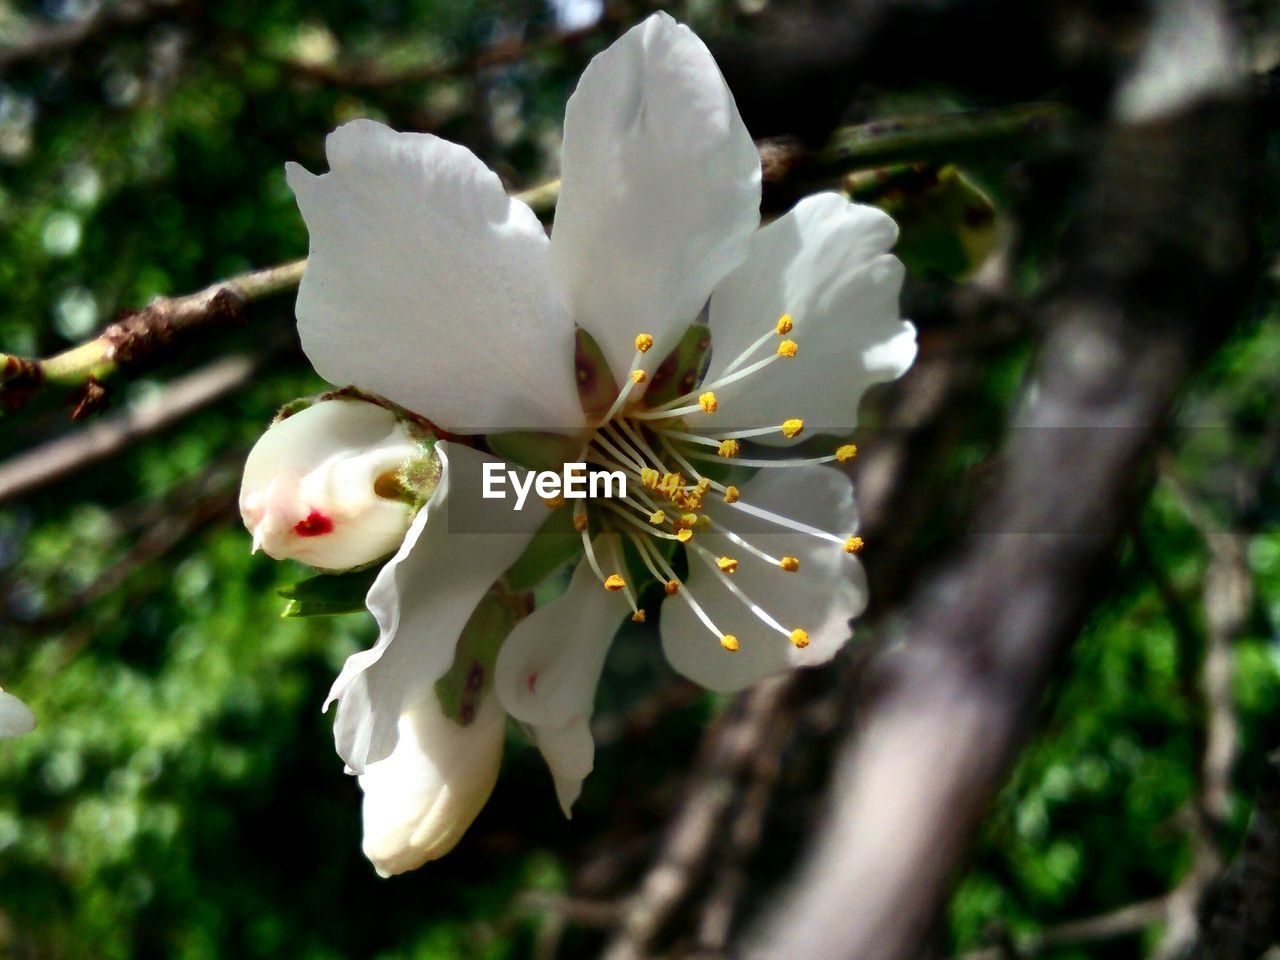 flower, white color, beauty in nature, fragility, nature, growth, tree, blossom, petal, freshness, branch, springtime, apple blossom, botany, no people, close-up, flower head, day, twig, outdoors, stamen, blooming